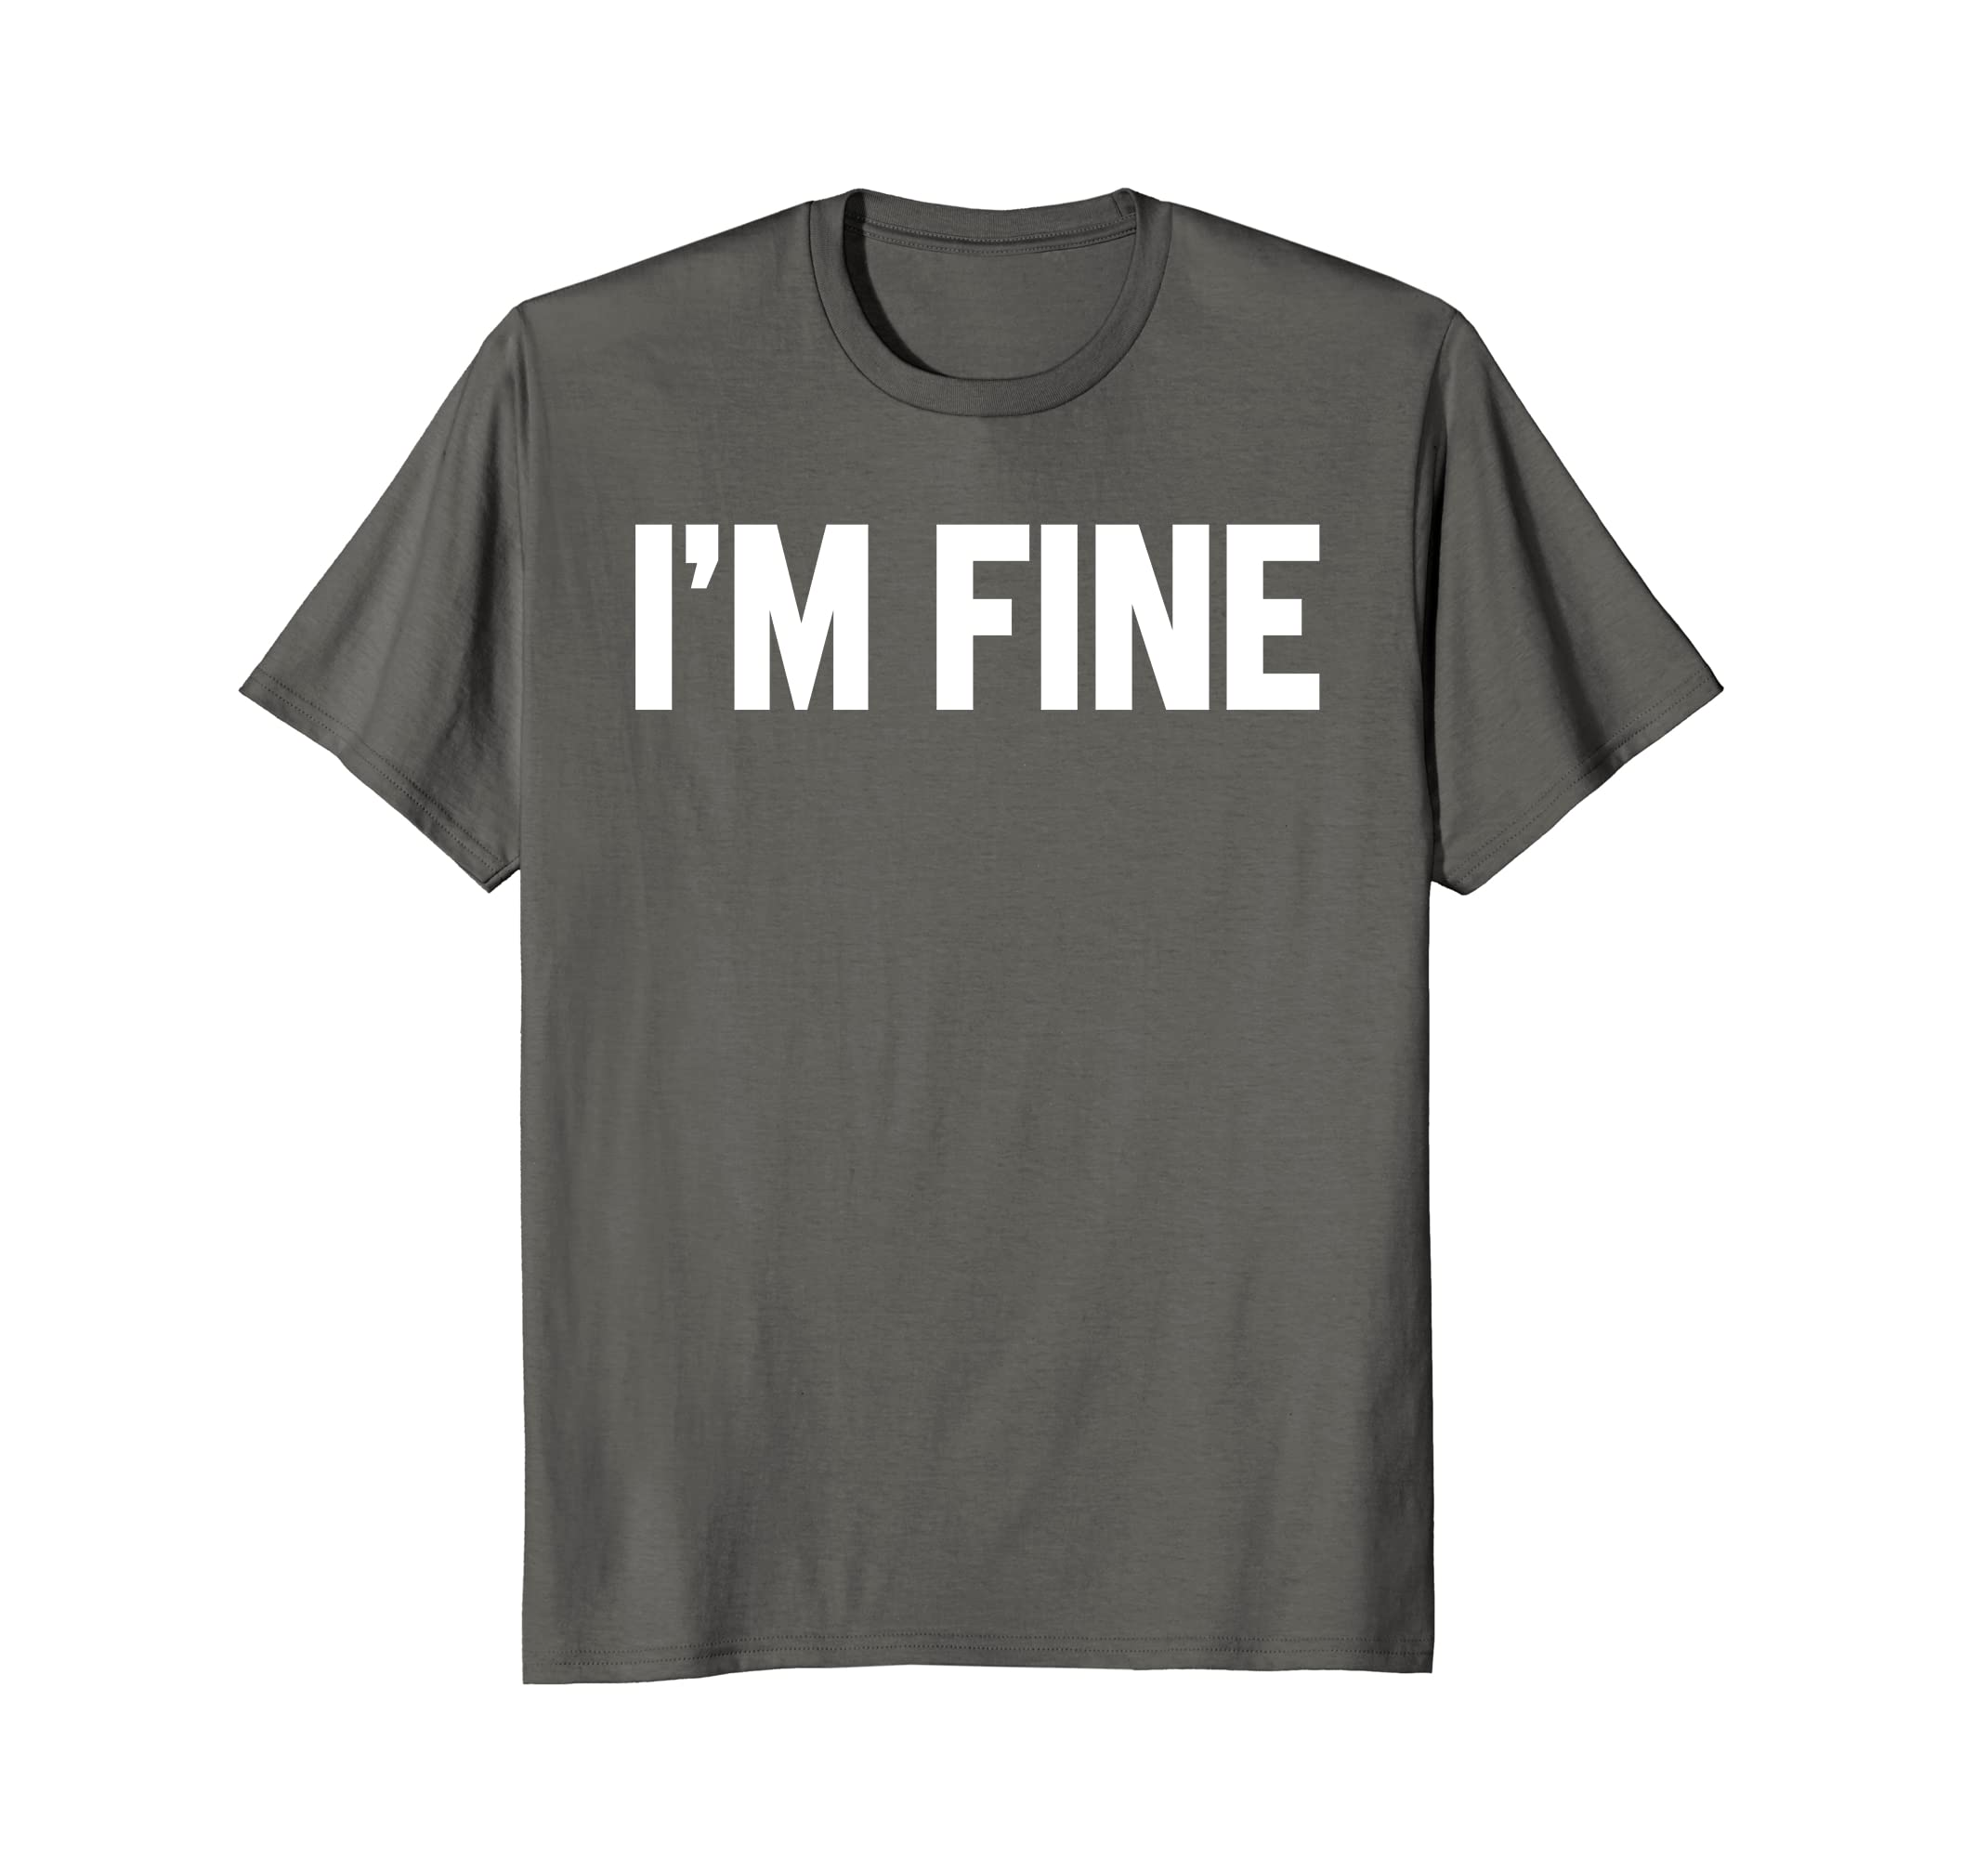 593858ec42bc5 Amazon.com  I m Fine T Shirts Funny Saying Sarcasm Quotes For Men Women   Clothing